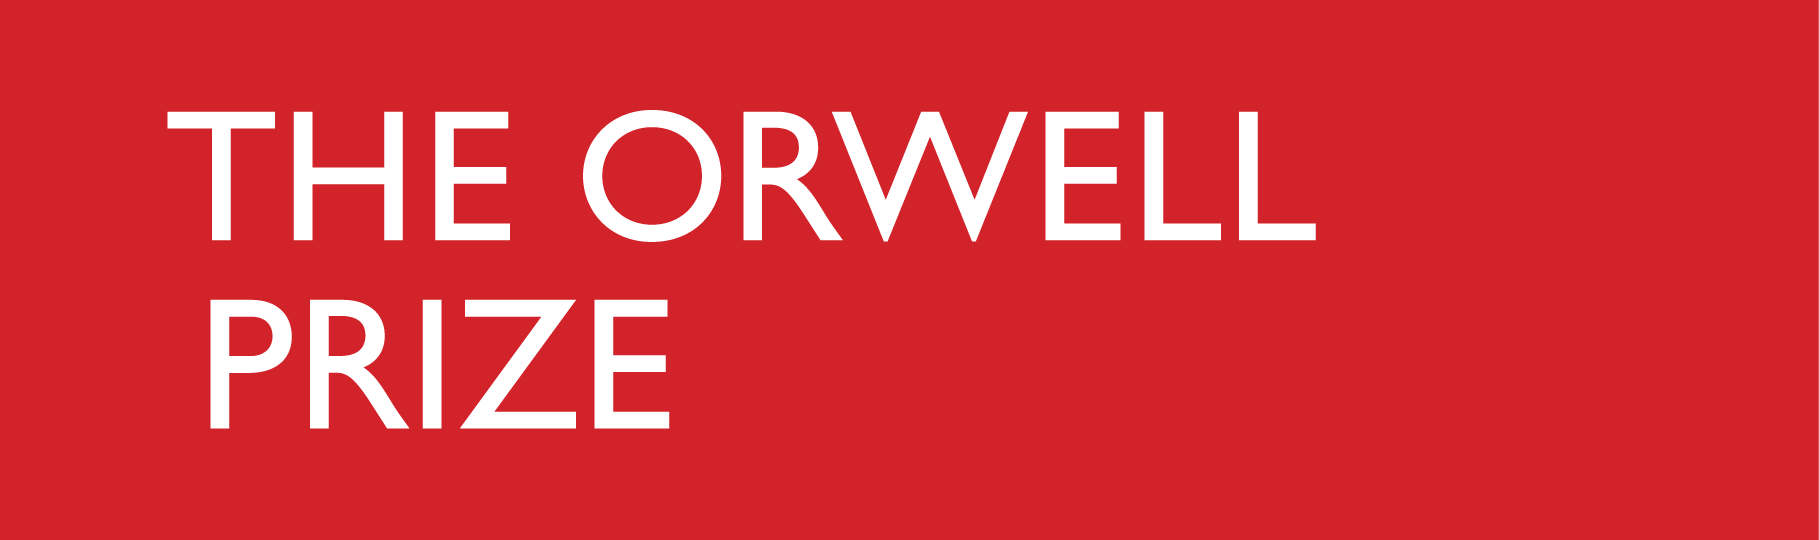 The Orwell Prize Logo